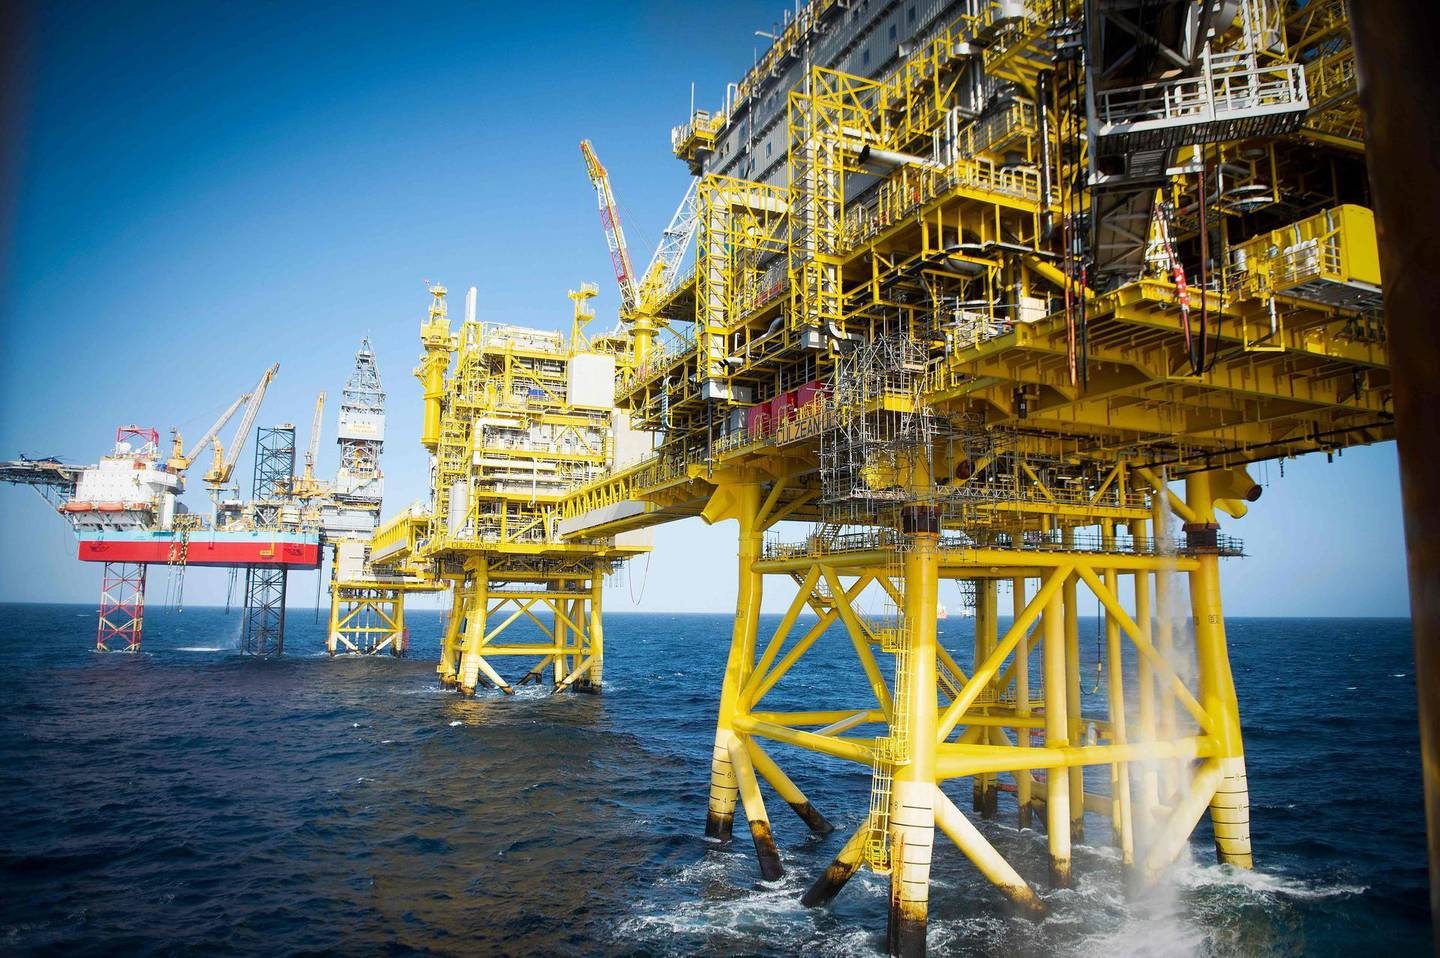 (FILES) In this file photo taken on April 08, 2019 The Total Culzean platform is pictured on the North Sea, about 45 miles (70 kilometres) east of the Aberdeen, Europe's self-proclaimed oil capital on Scotland's northeast coast, on April 8, 2019. A barrel of Brent crude oil rose to $60 on February 8, 2021 for the first time in nearly a year, a sign that the oil market is looking toward recovery.  -   / AFP / ANDY BUCHANAN